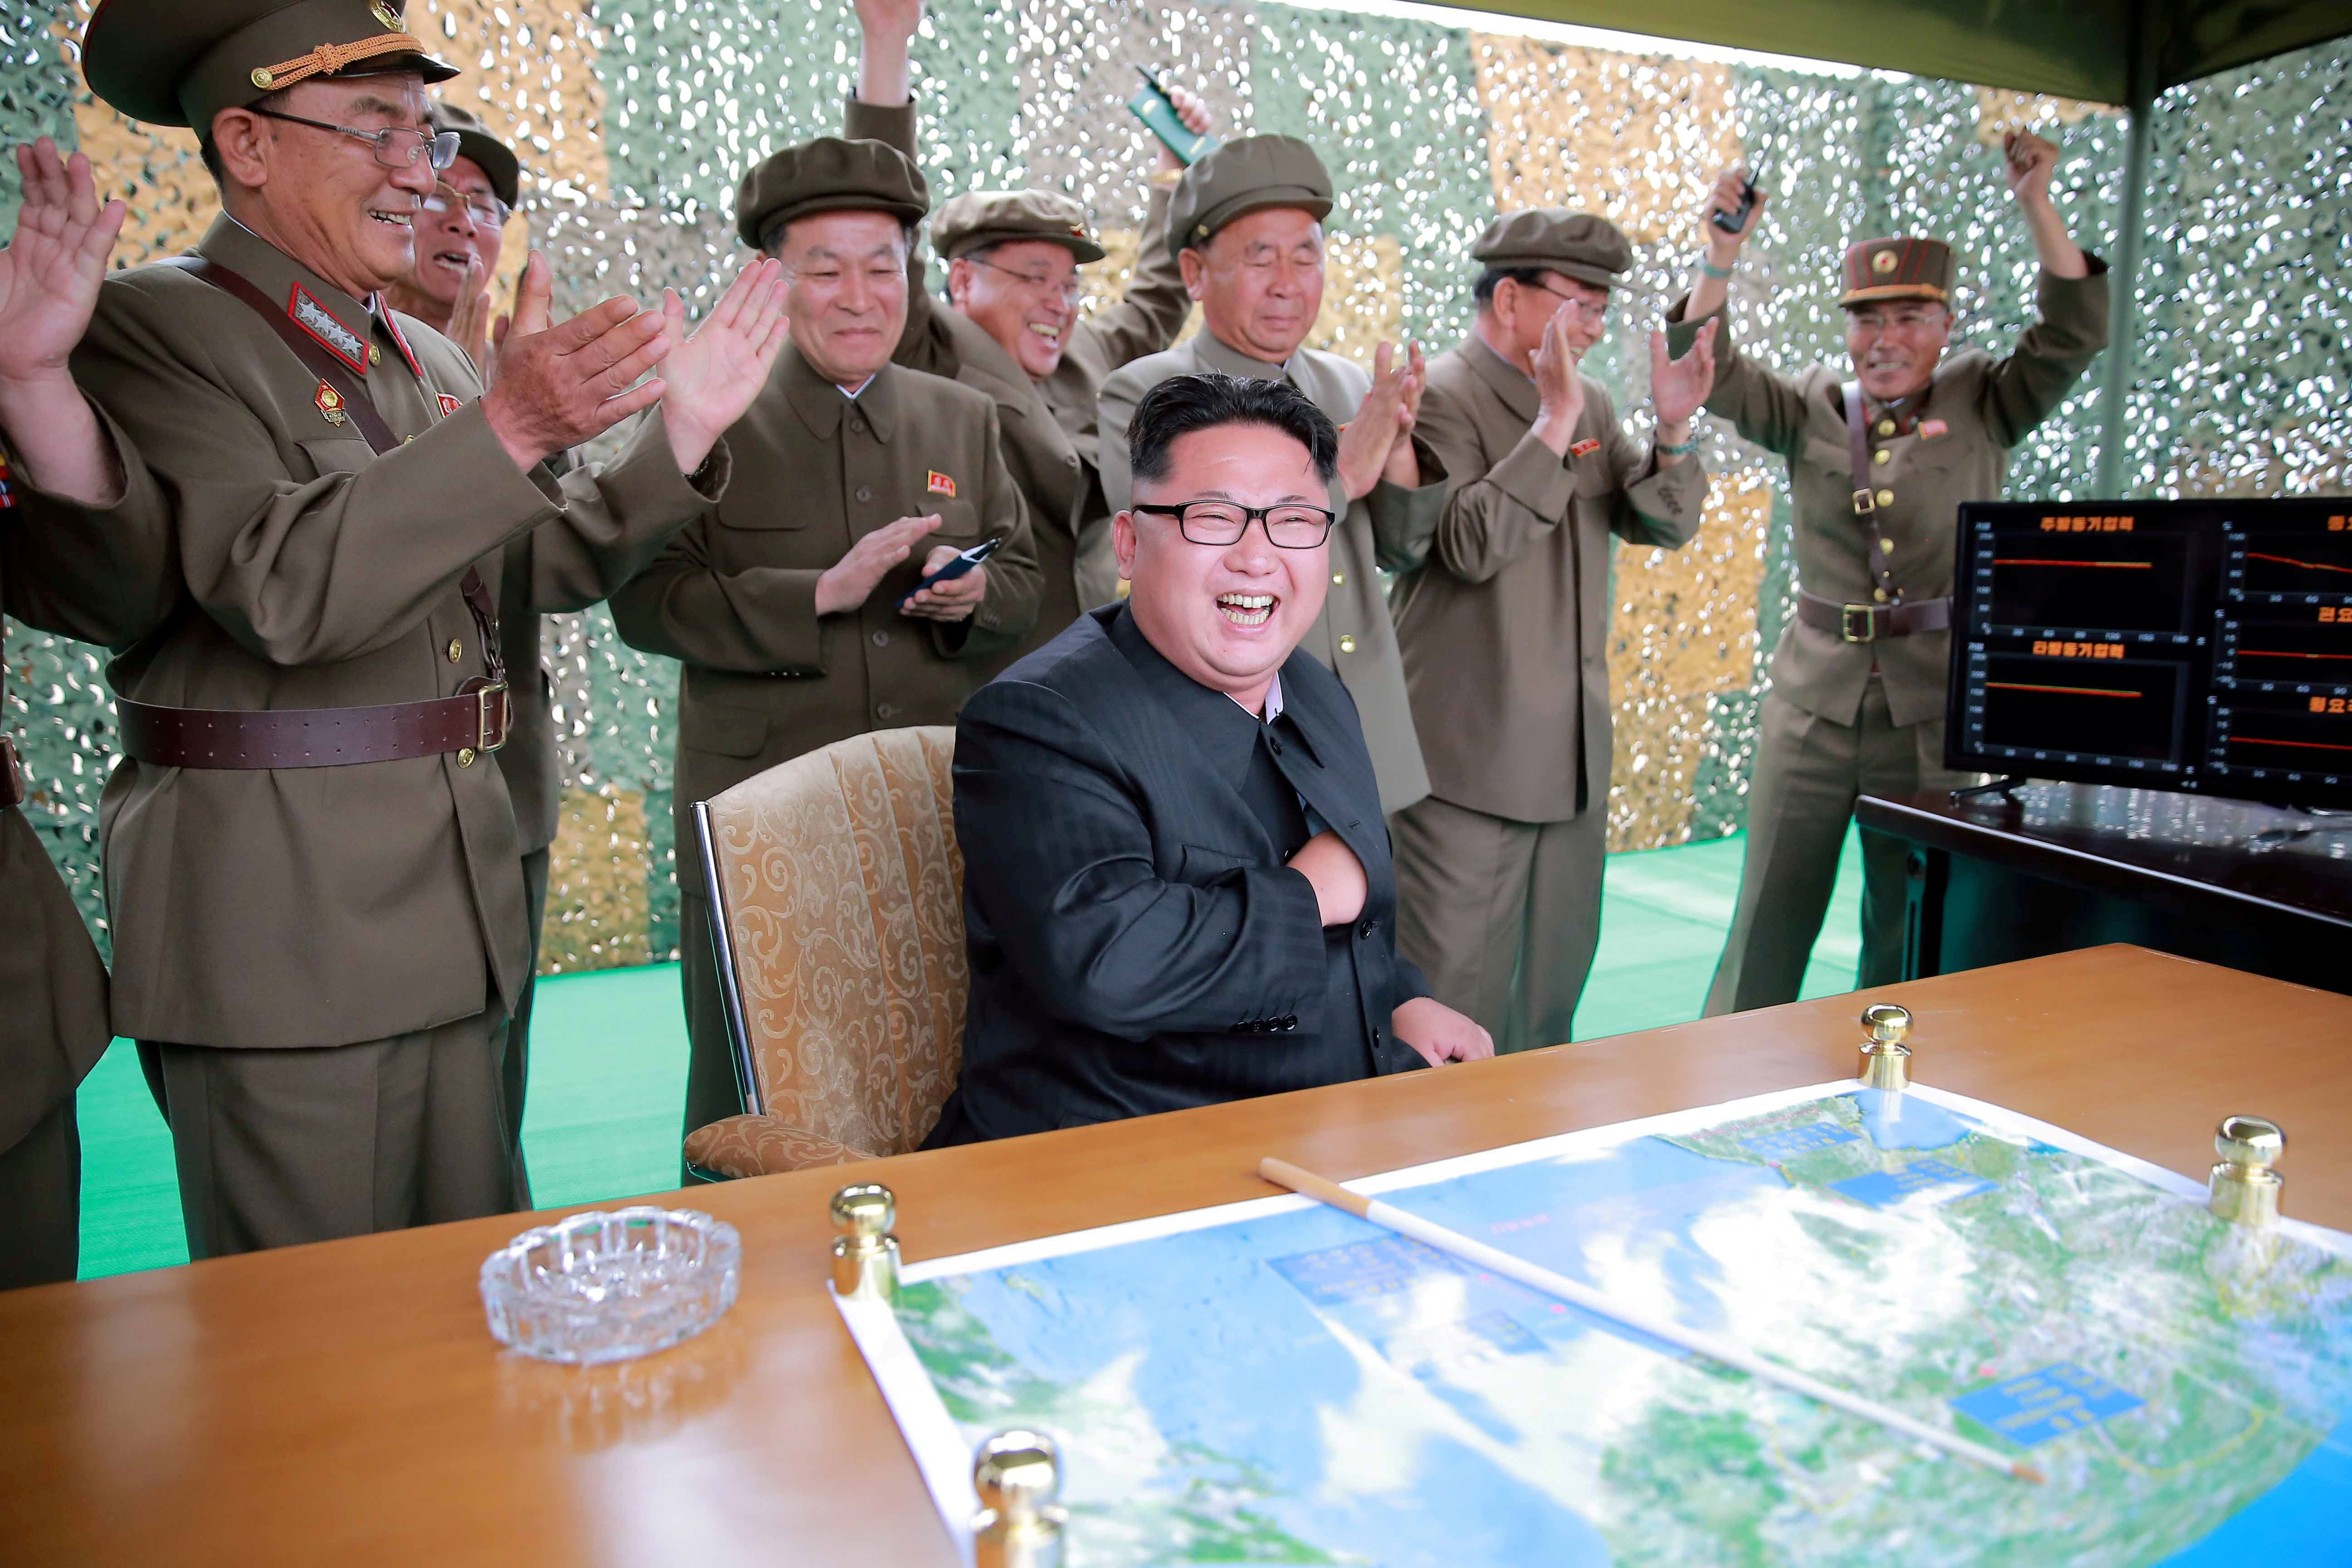 FILE PHOTO: North Korean leader Kim Jongun reacts during a test launch of ground-to-ground medium long-range ballistic rocket Hwasong-10 in this undated photo released by North Korea's Korean Central News Agency (KCNA) on June 23, 2016.  REUTERS/KCNA/File Photo          ATTENTION EDITORS - THIS PICTURE WAS PROVIDED BY A THIRD PARTY. REUTERS IS UNABLE TO INDEPENDENTLY VERIFY THE AUTHENTICITY, CONTENT, LOCATION OR DATE OF THIS IMAGE. FOR EDITORIAL USE ONLY. NOT FOR SALE FOR MARKETING OR ADVERTISING CAMPAIGNS. NO THIRD PARTY SALES. NOT FOR USE BY REUTERS THIRD PARTY DISTRIBUTORS. SOUTH KOREA OUT. NO COMMERCIAL OR EDITORIAL SALES IN SOUTH KOREA. THIS PICTURE IS DISTRIBUTED EXACTLY AS RECEIVED BY REUTERS, AS A SERVICE TO CLIENTS.